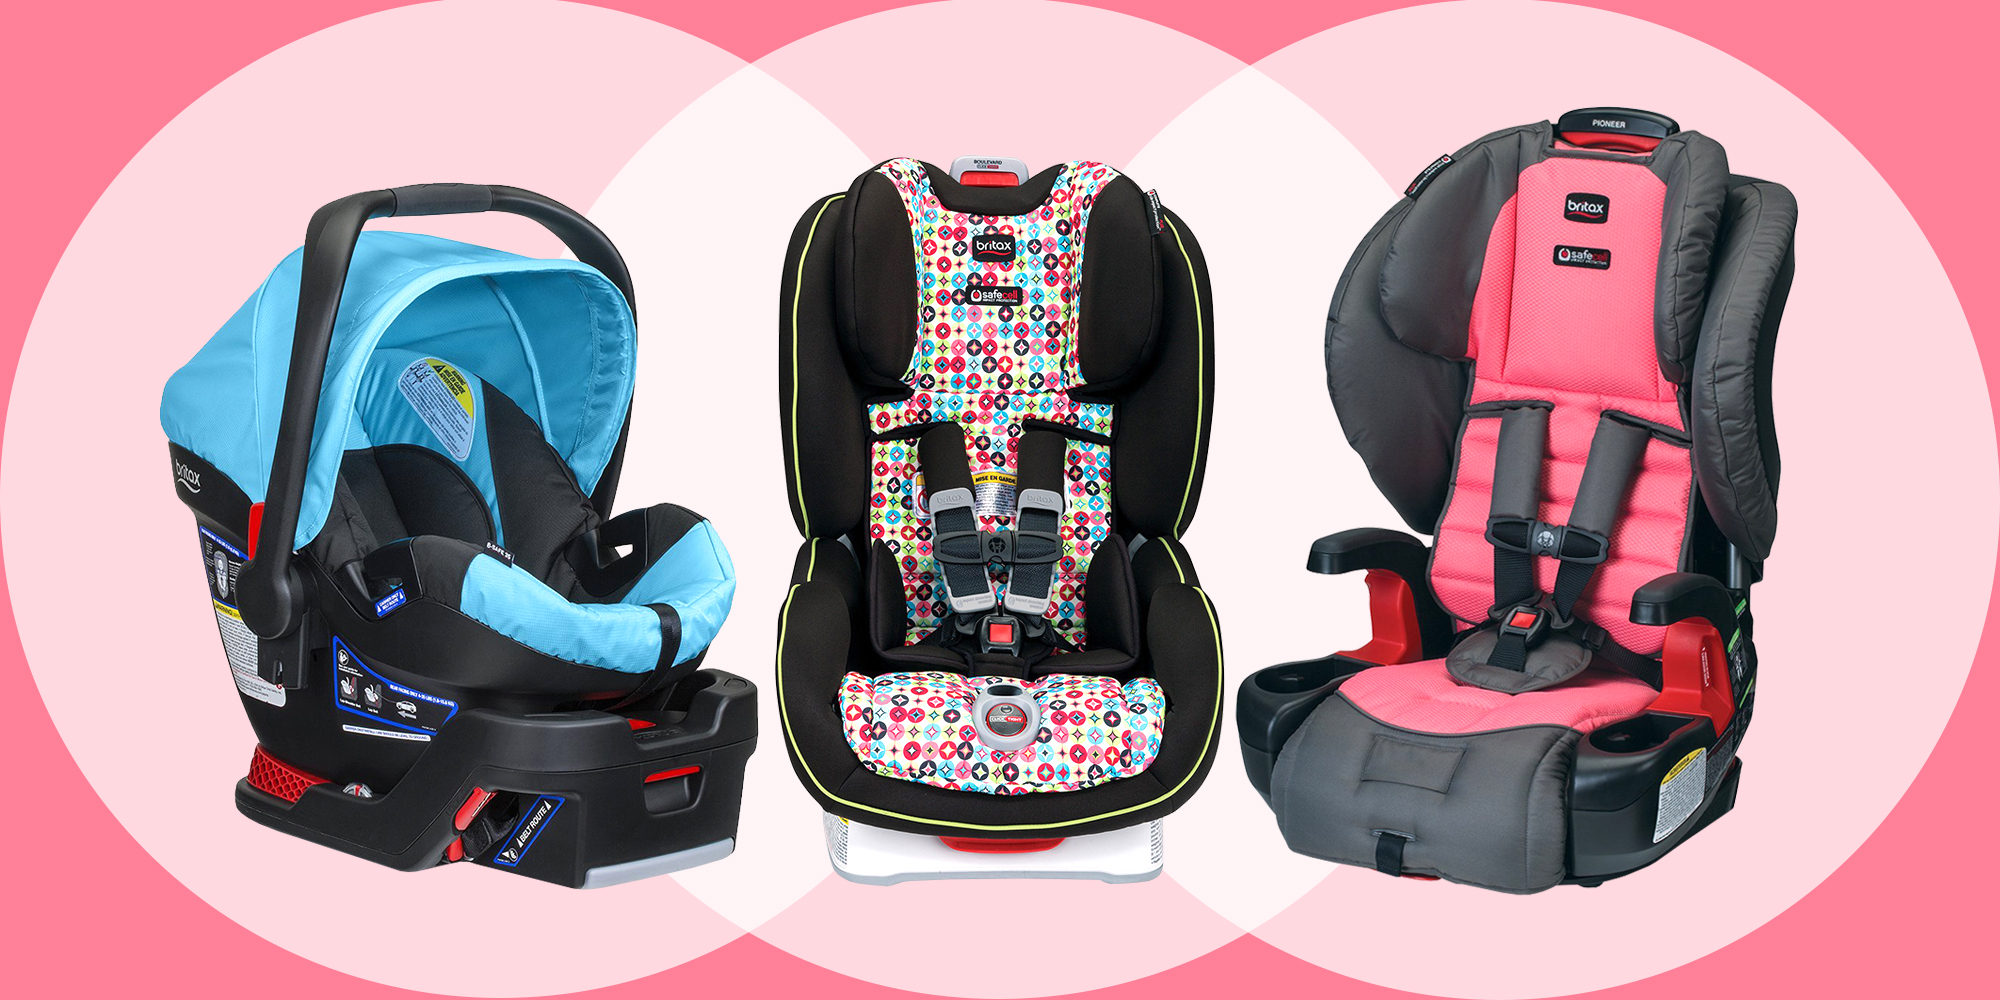 8 best britax car seats for 2018 reviews of britax car seats seat covers accessories. Black Bedroom Furniture Sets. Home Design Ideas